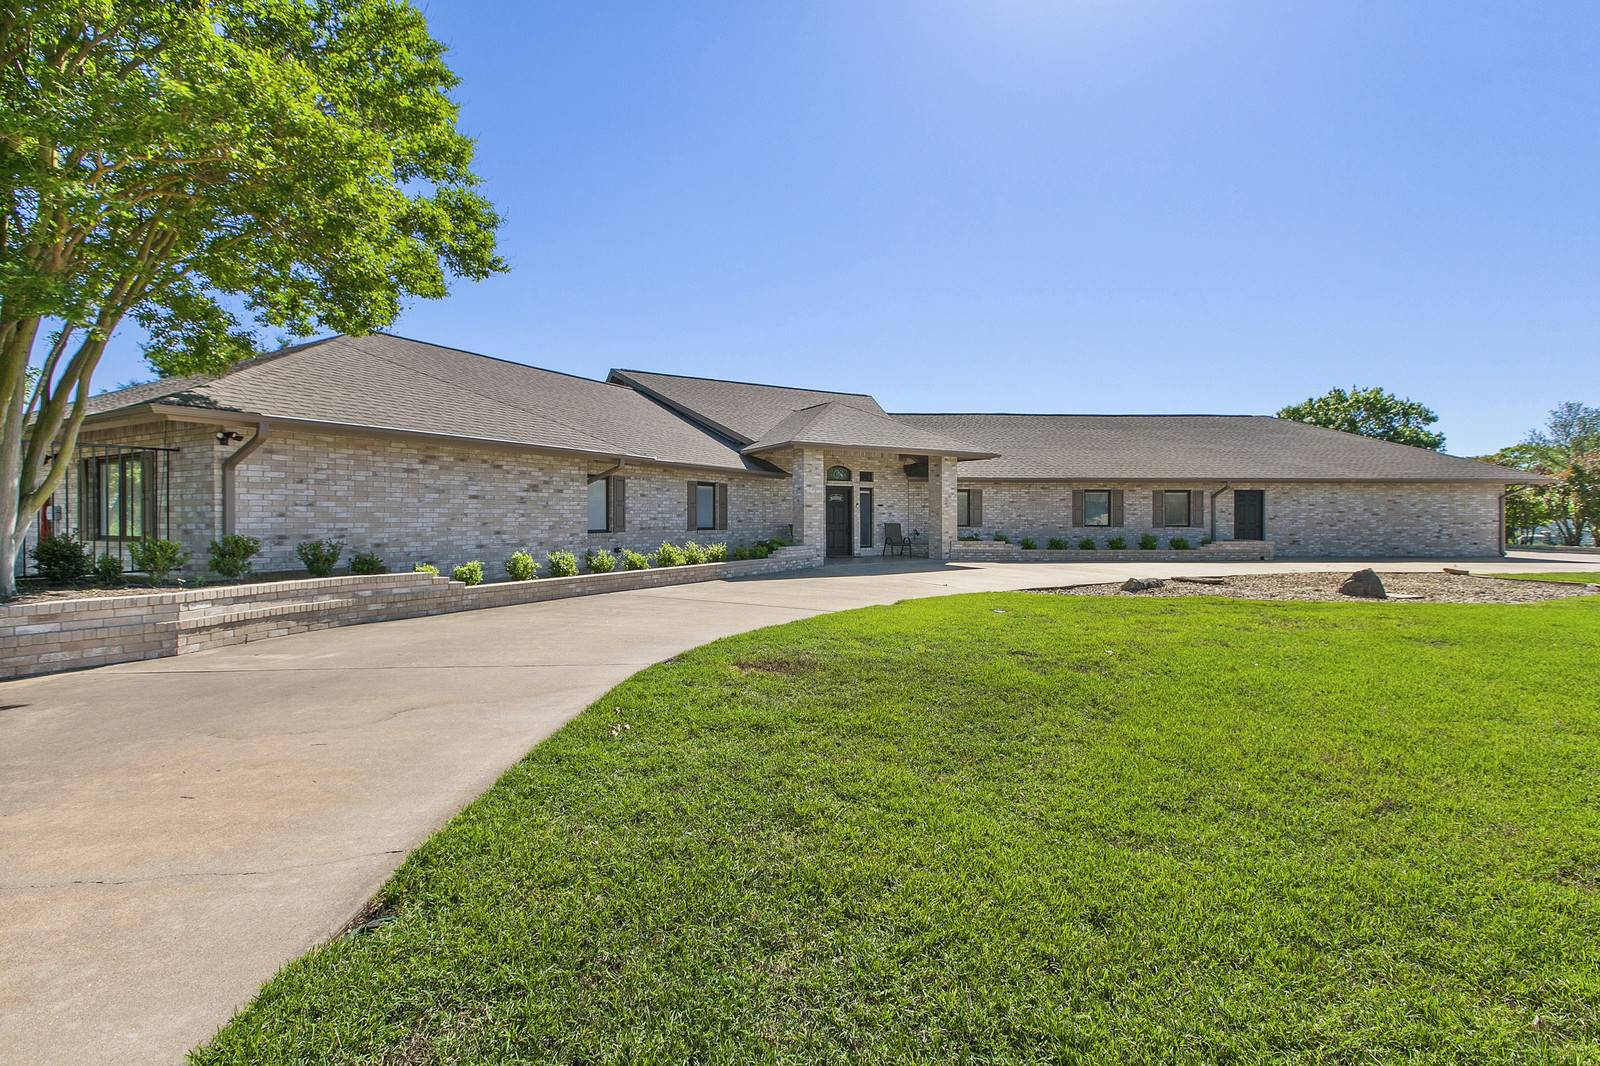 Acreage home for sale Leander TX